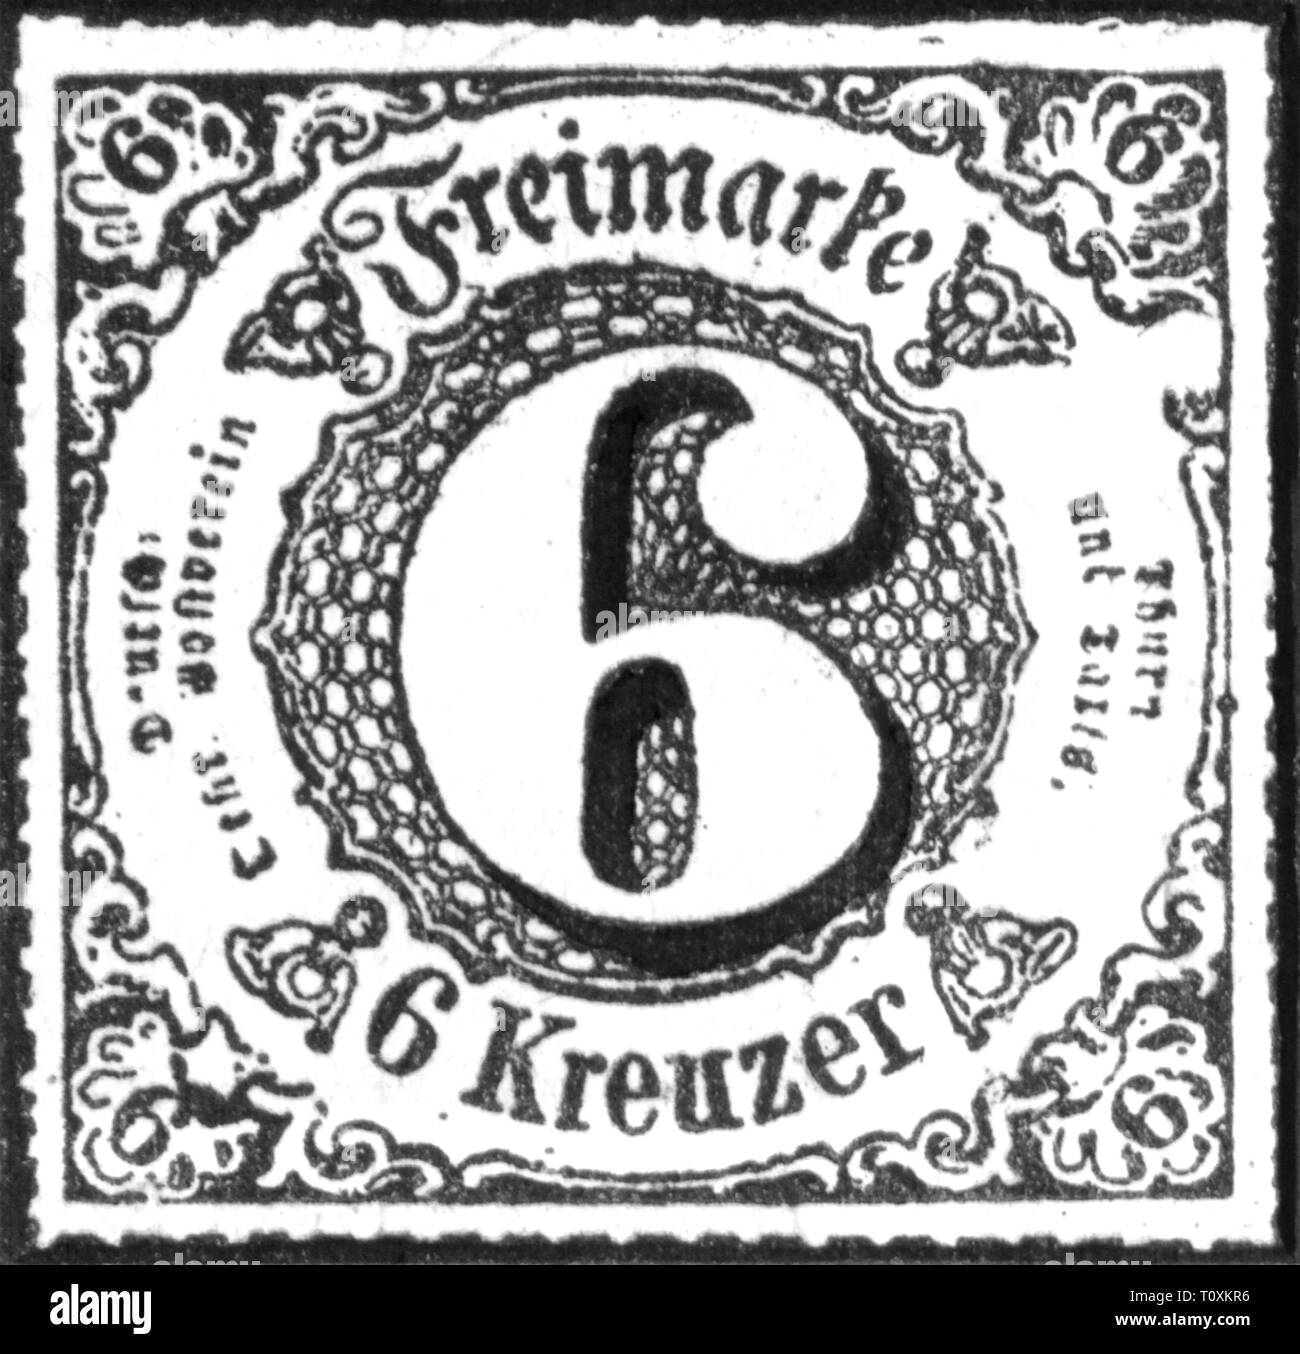 mail, postage stamps, Germany, Thurn-und-Taxis-Post, 6 Kreuzer postage stamp, Southern district, 1866, Additional-Rights-Clearance-Info-Not-Available - Stock Image